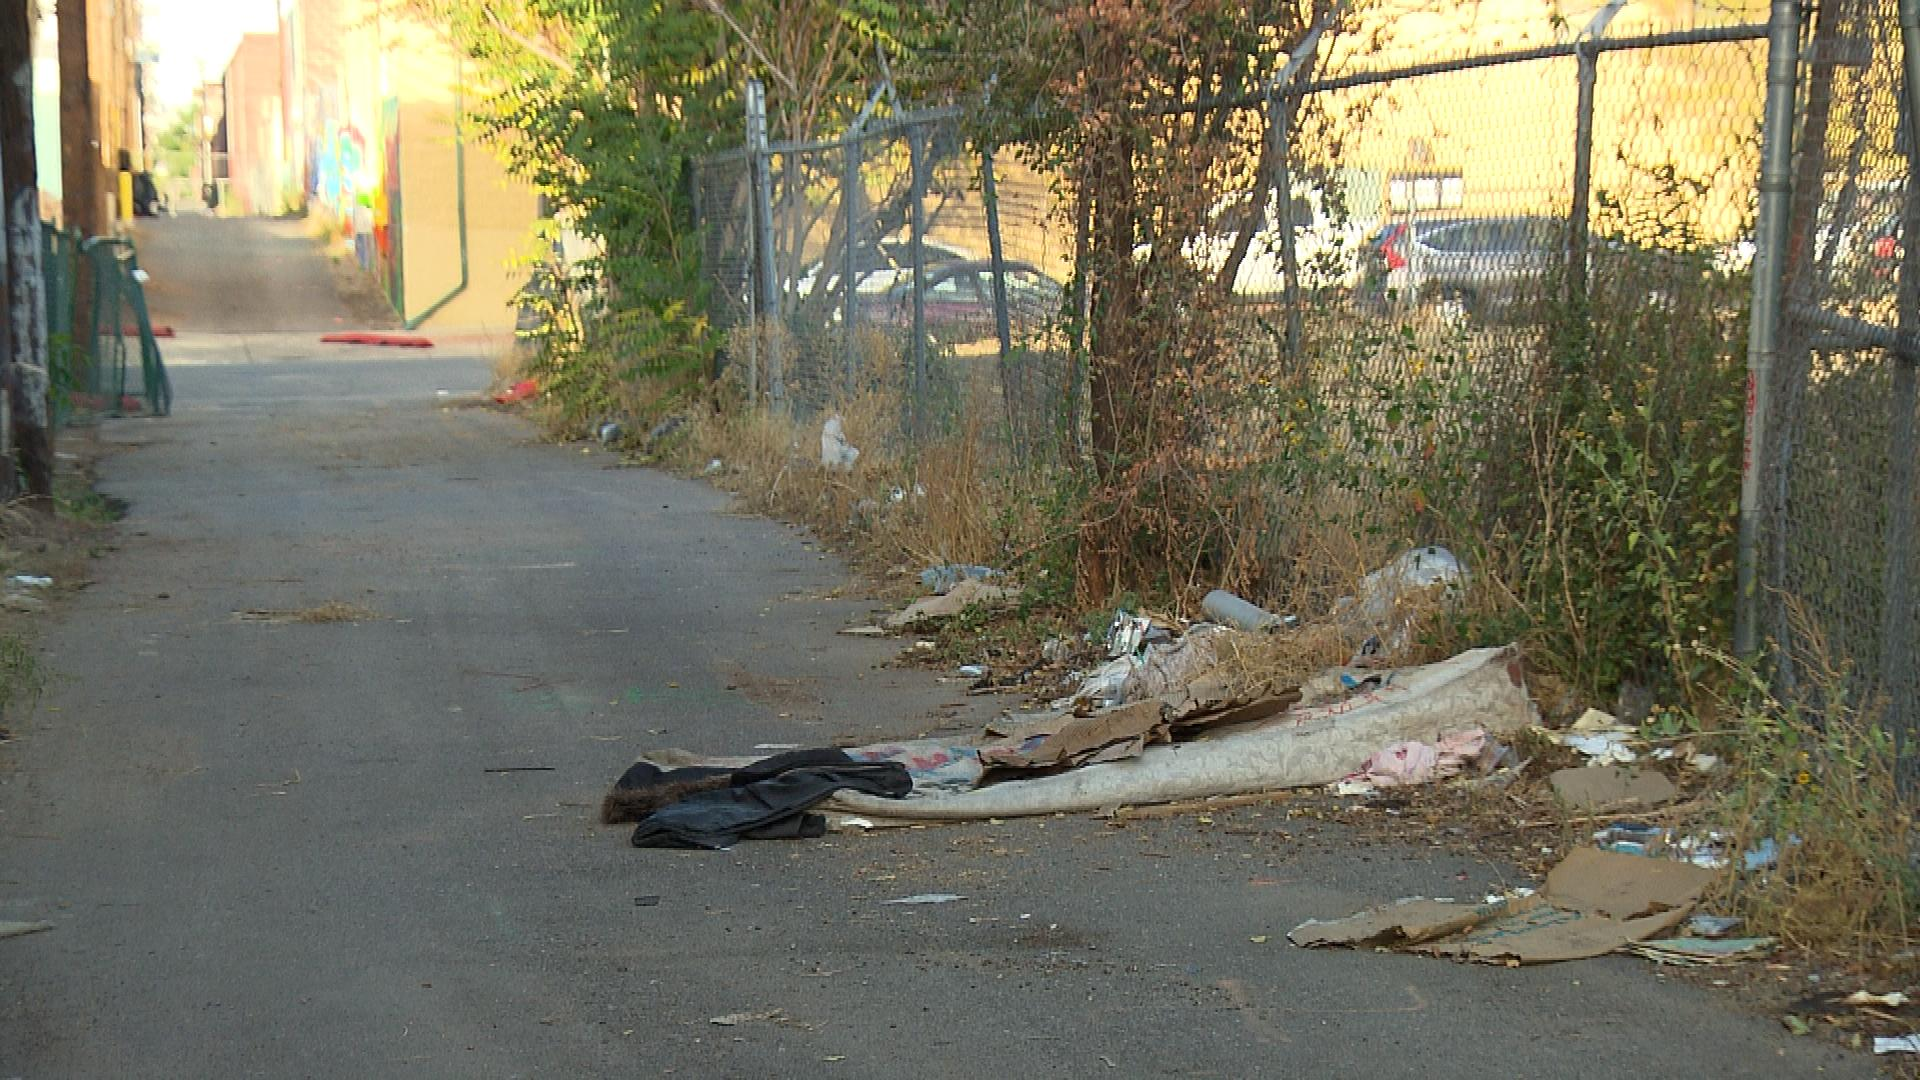 The alley where the hit-and-run occurred (credit: CBS)